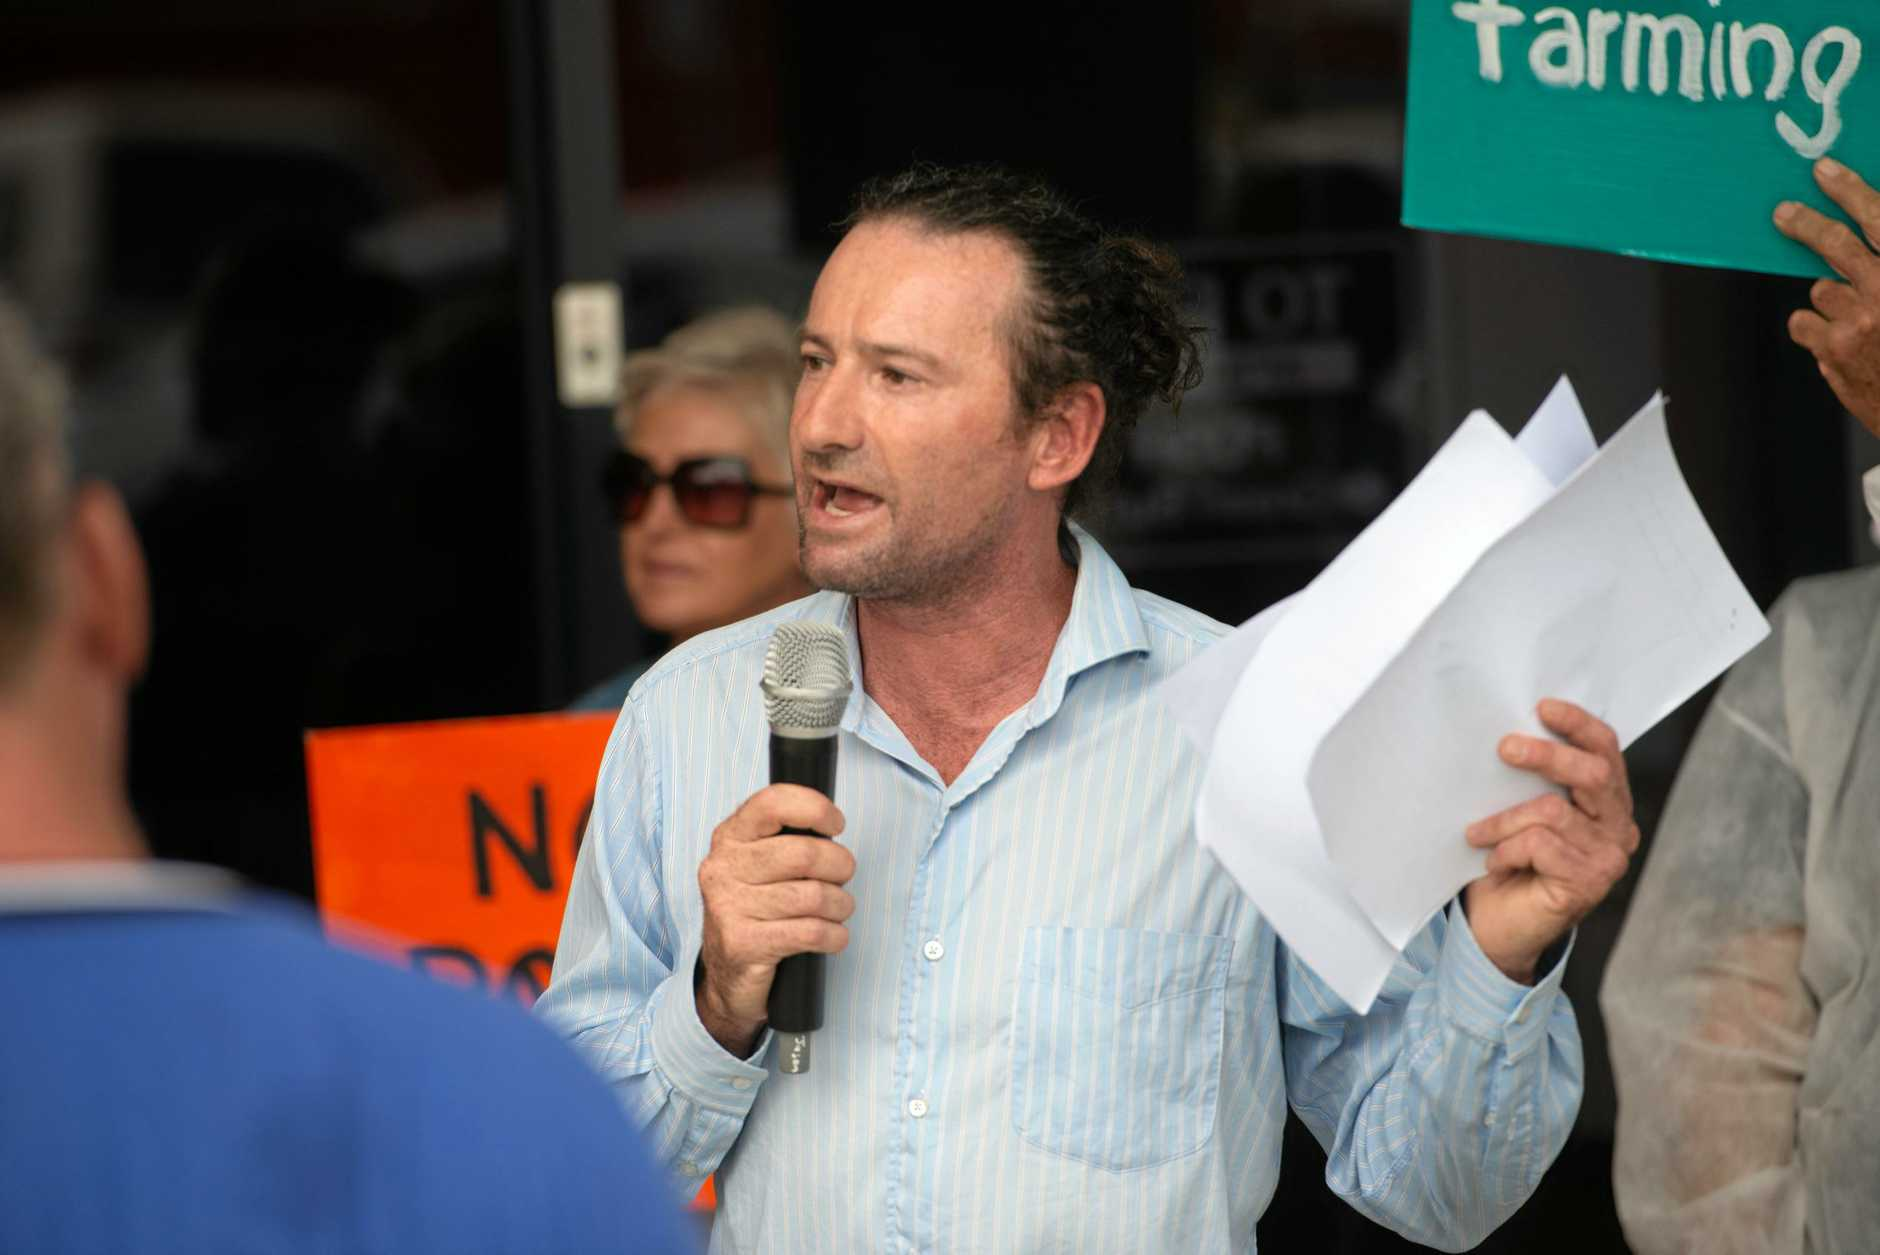 CALLING FOR ACTION: Mark Graham speaks at the rally.